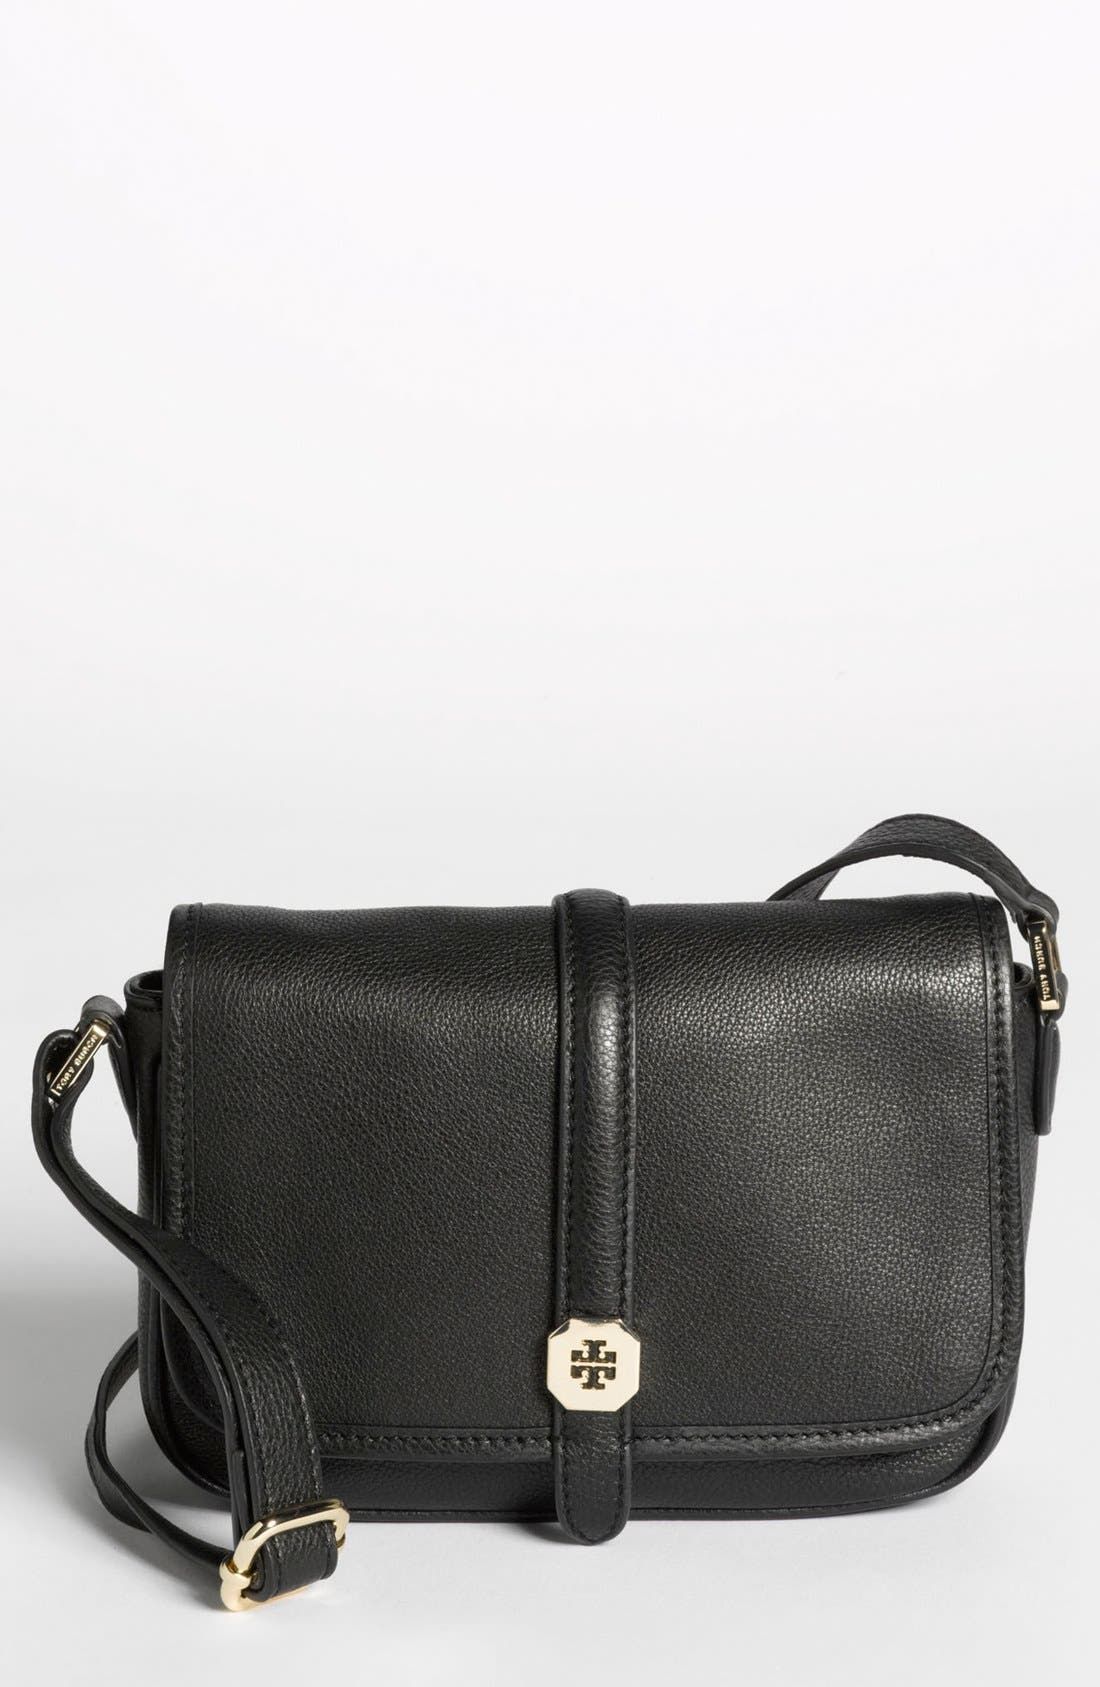 Alternate Image 1 Selected - Tory Burch 'Clay - Mini' Leather Crossbody Bag